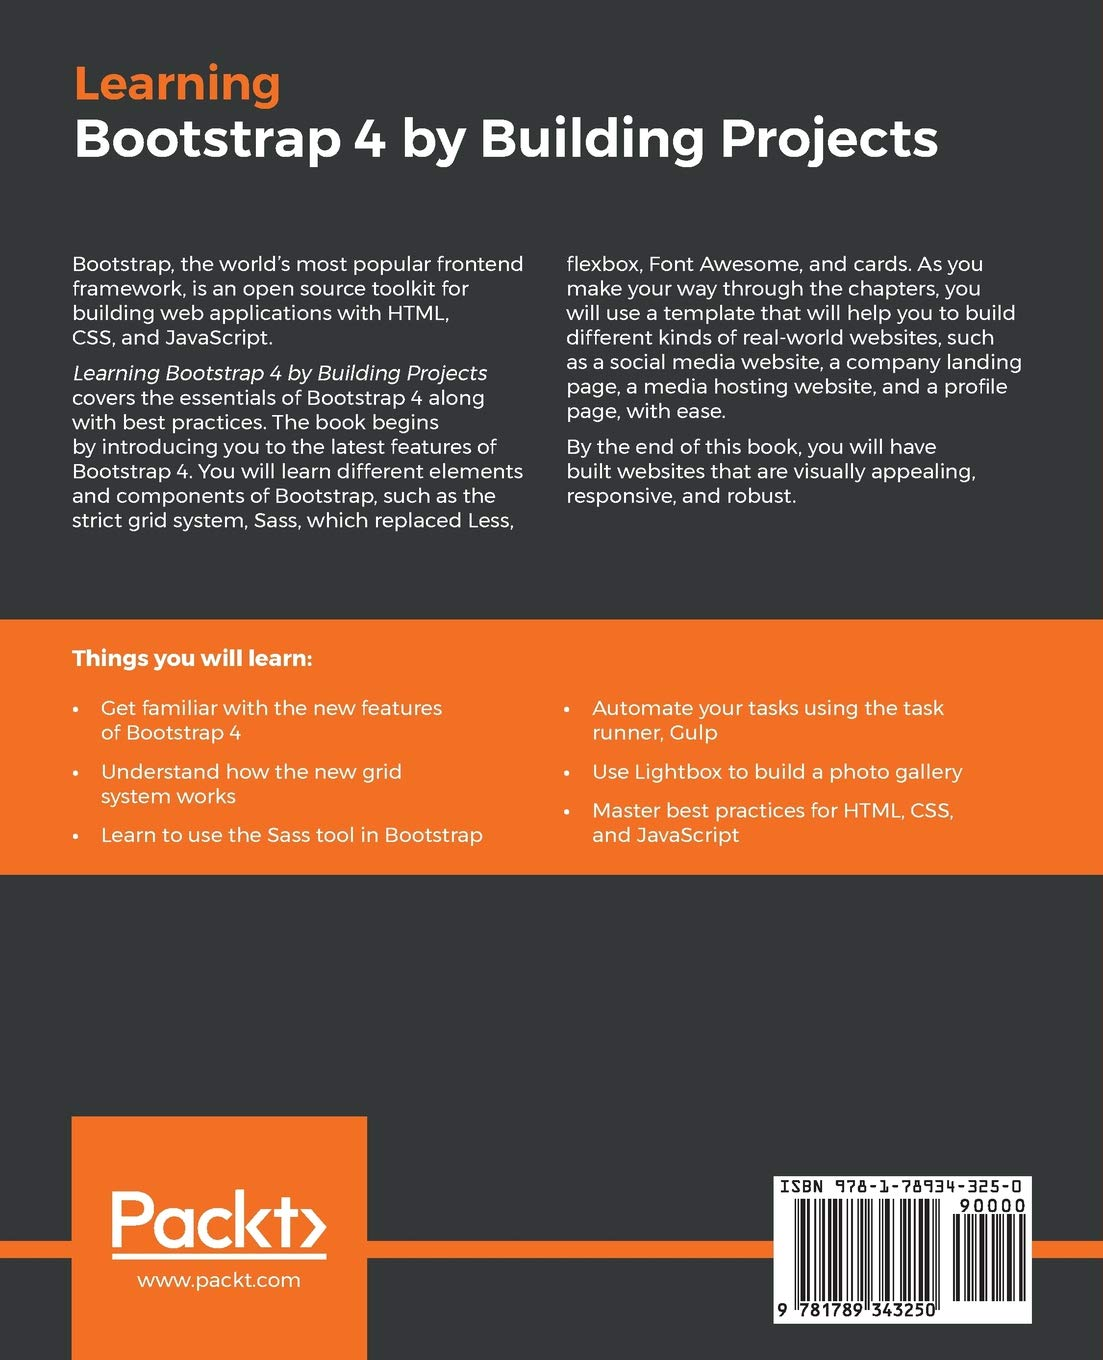 Buy Learning Bootstrap 4 by Building Projects: Develop 5